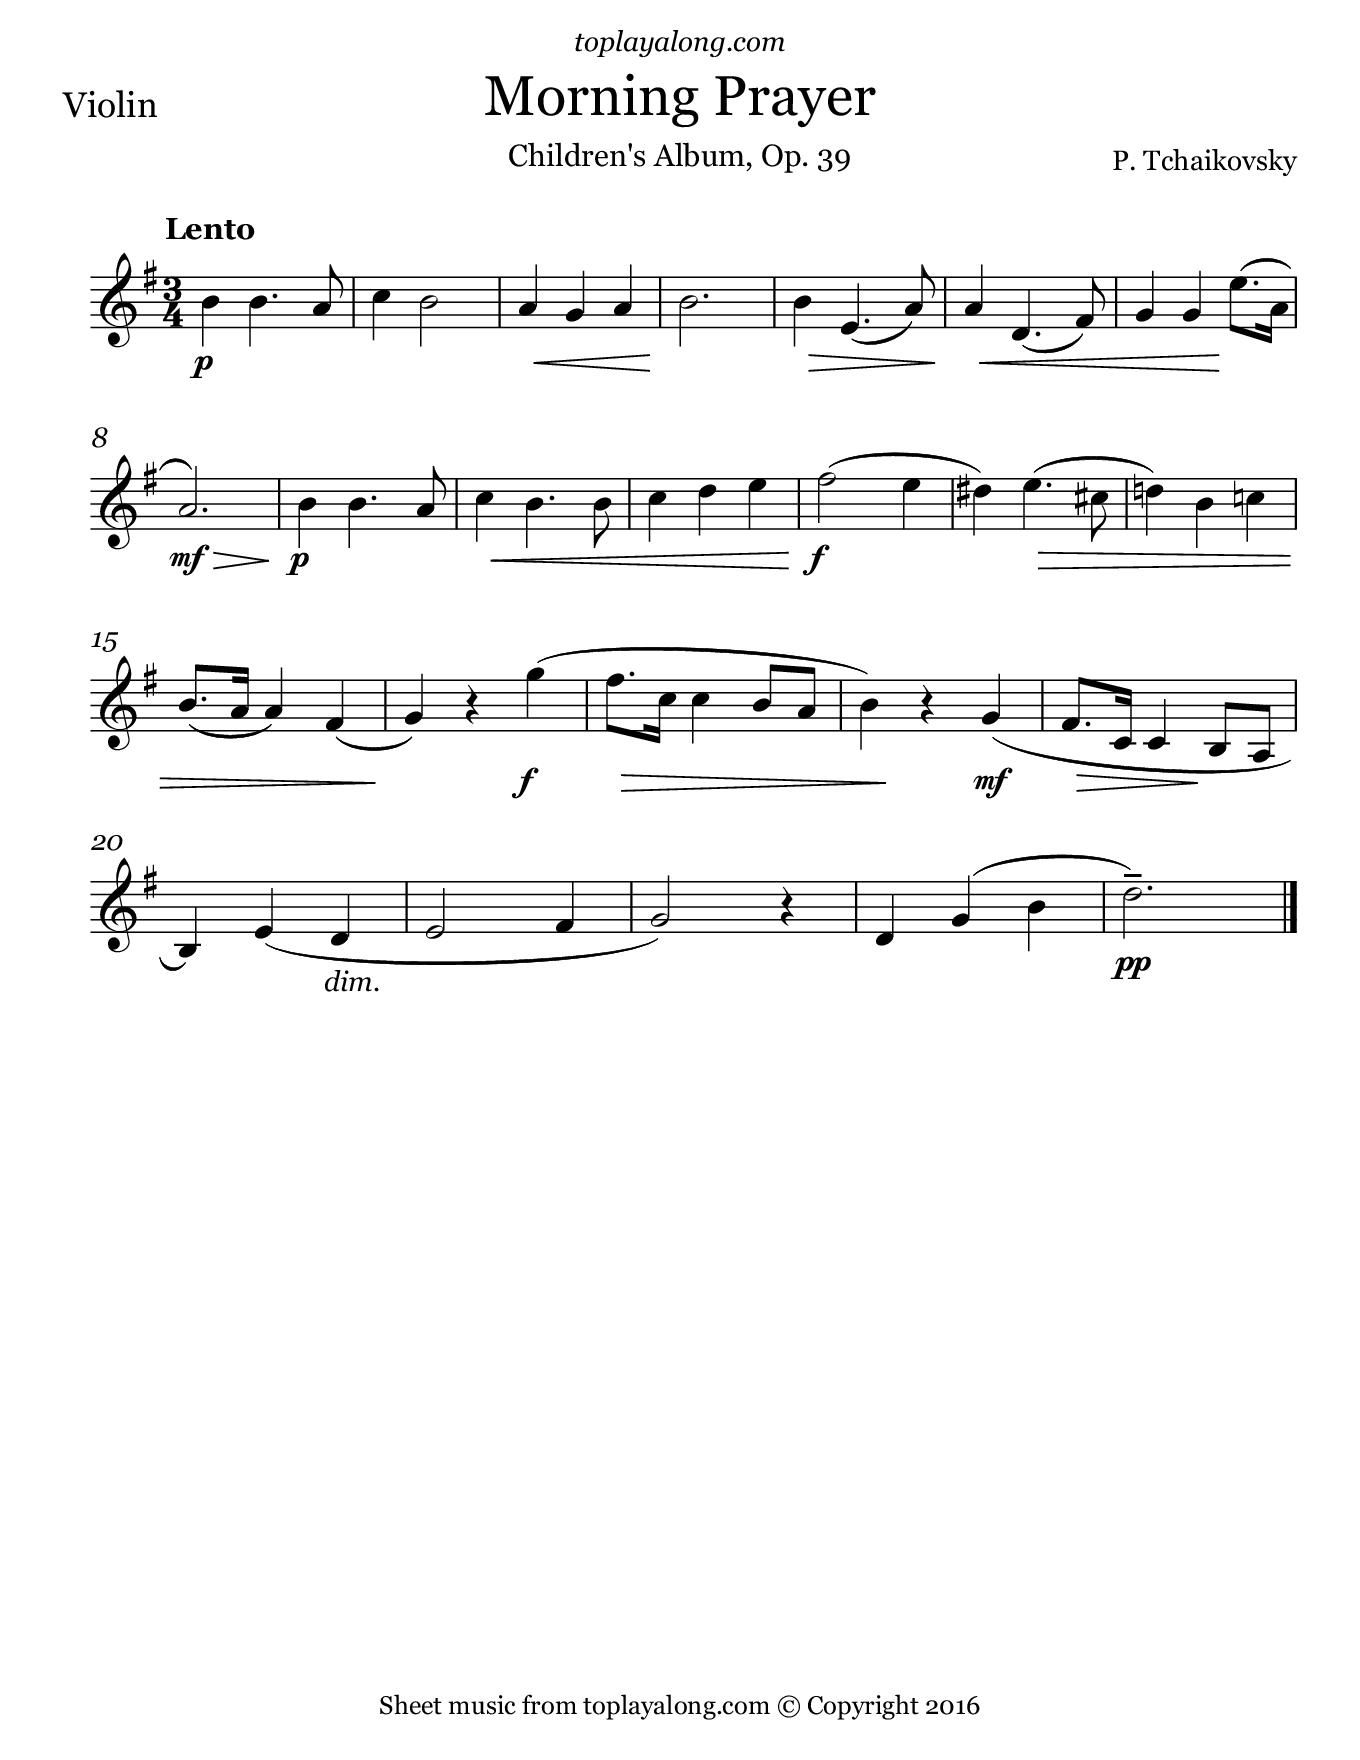 Morning Prayer by Tchaikovsky. Sheet music for Violin, page 1.